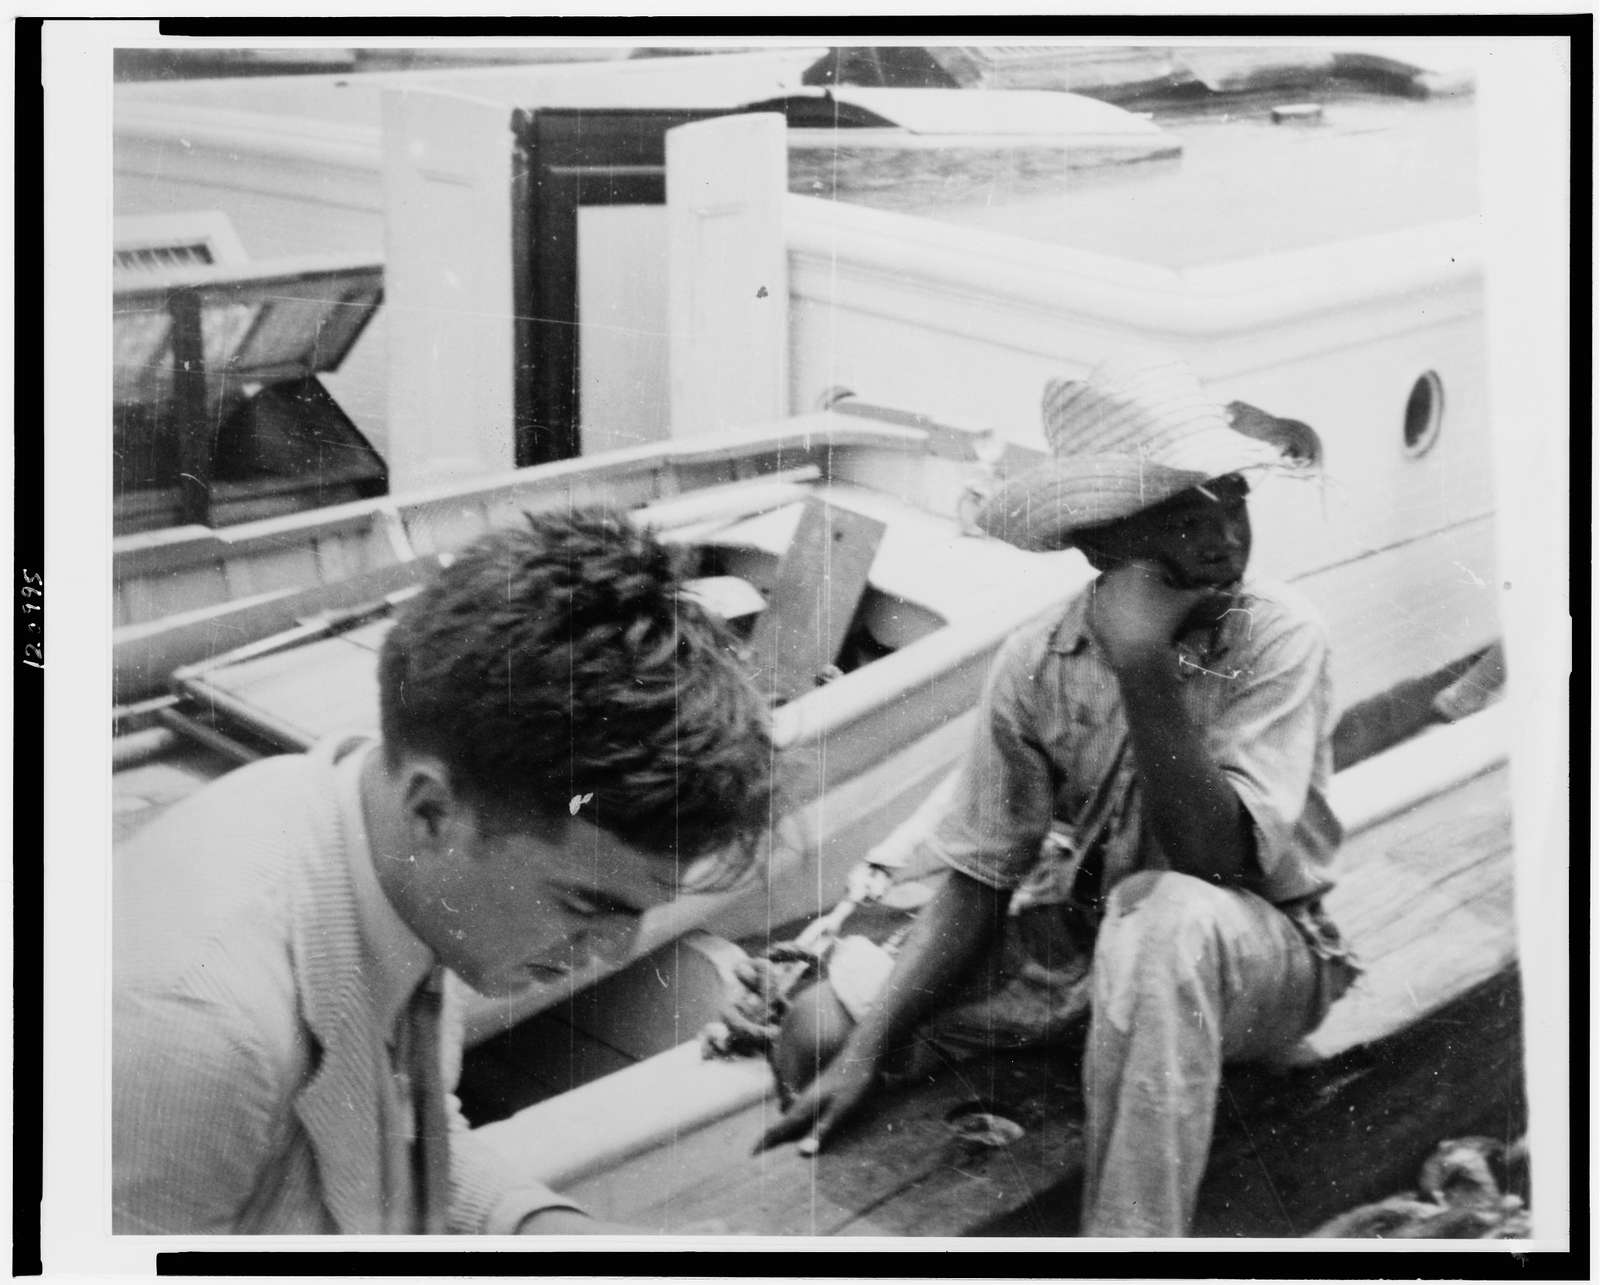 [Alan Lomax (left) youngster on board boat, during Bahamas recording expedition]